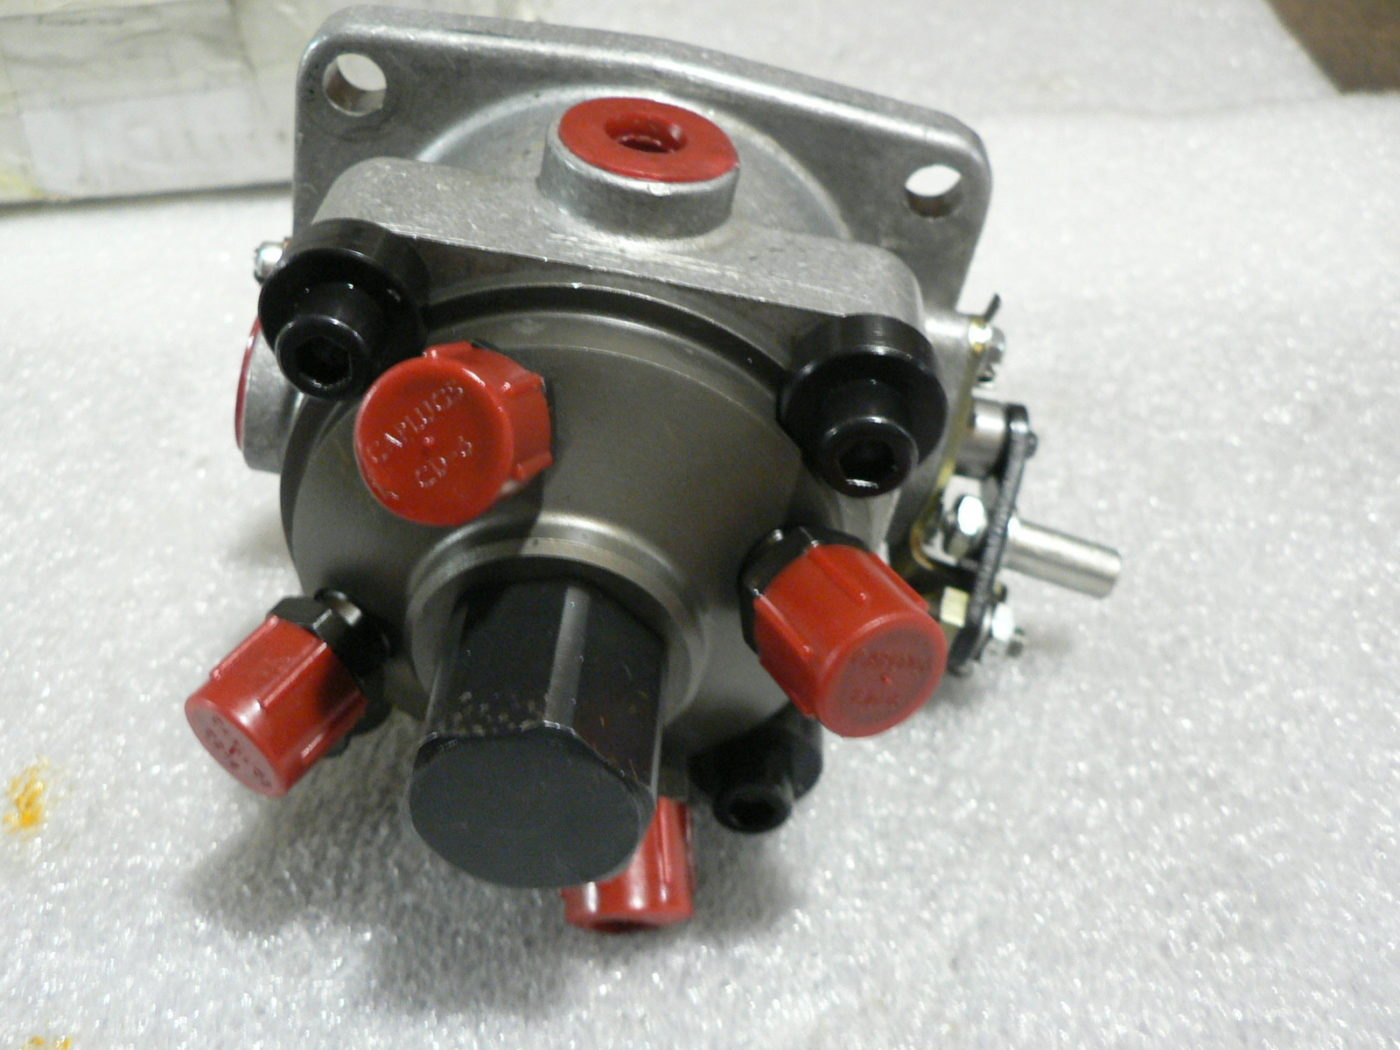 hight resolution of mep002a mep003a fuel injection pump ambac m50